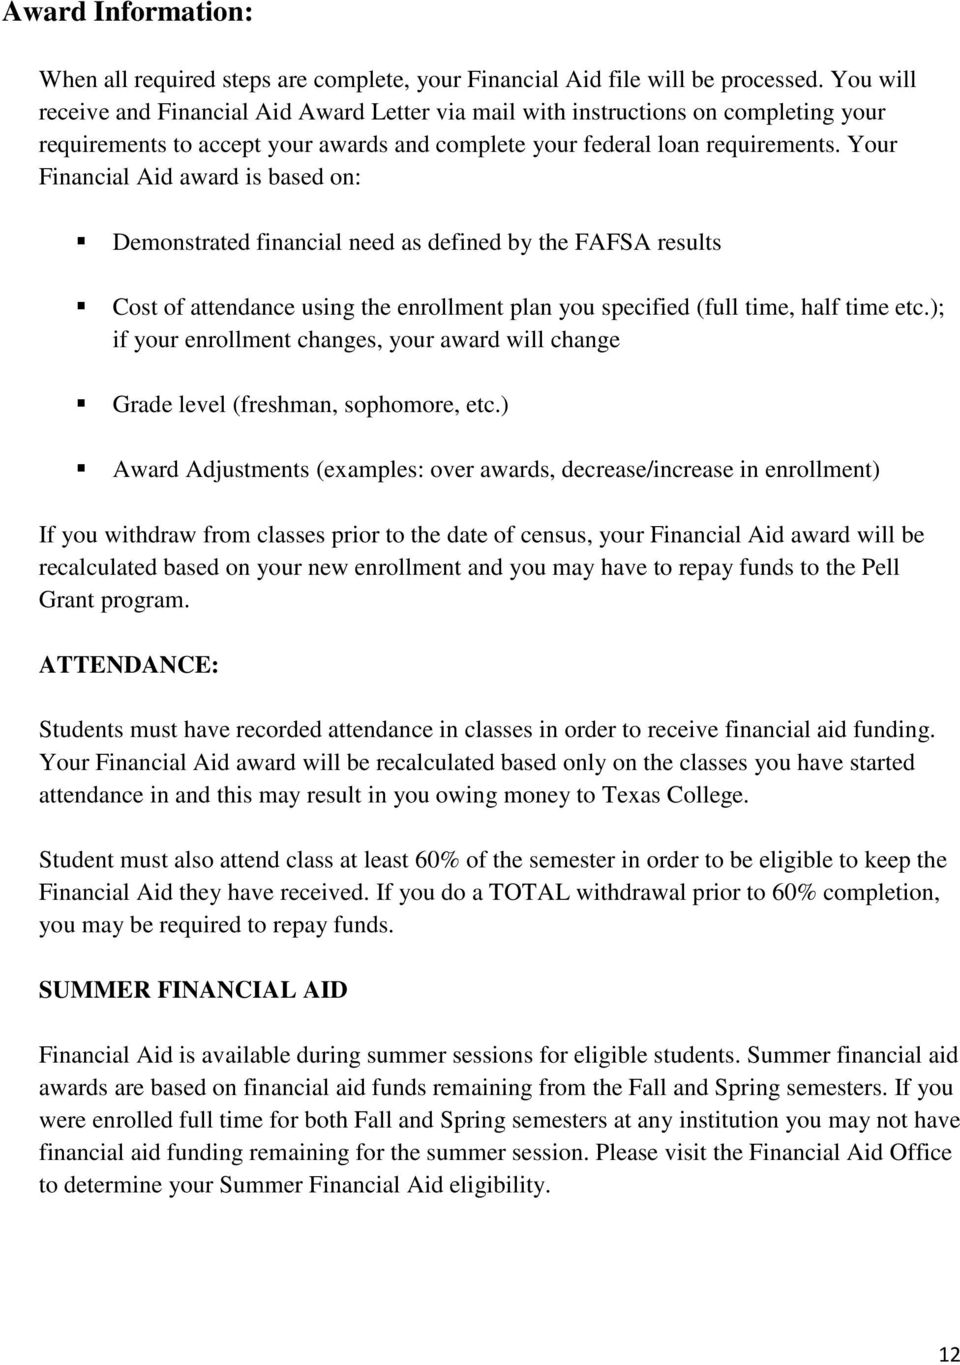 Your Financial Aid award is based on: Demonstrated financial need as defined by the FAFSA results Cost of attendance using the enrollment plan you specified (full time, half time etc.